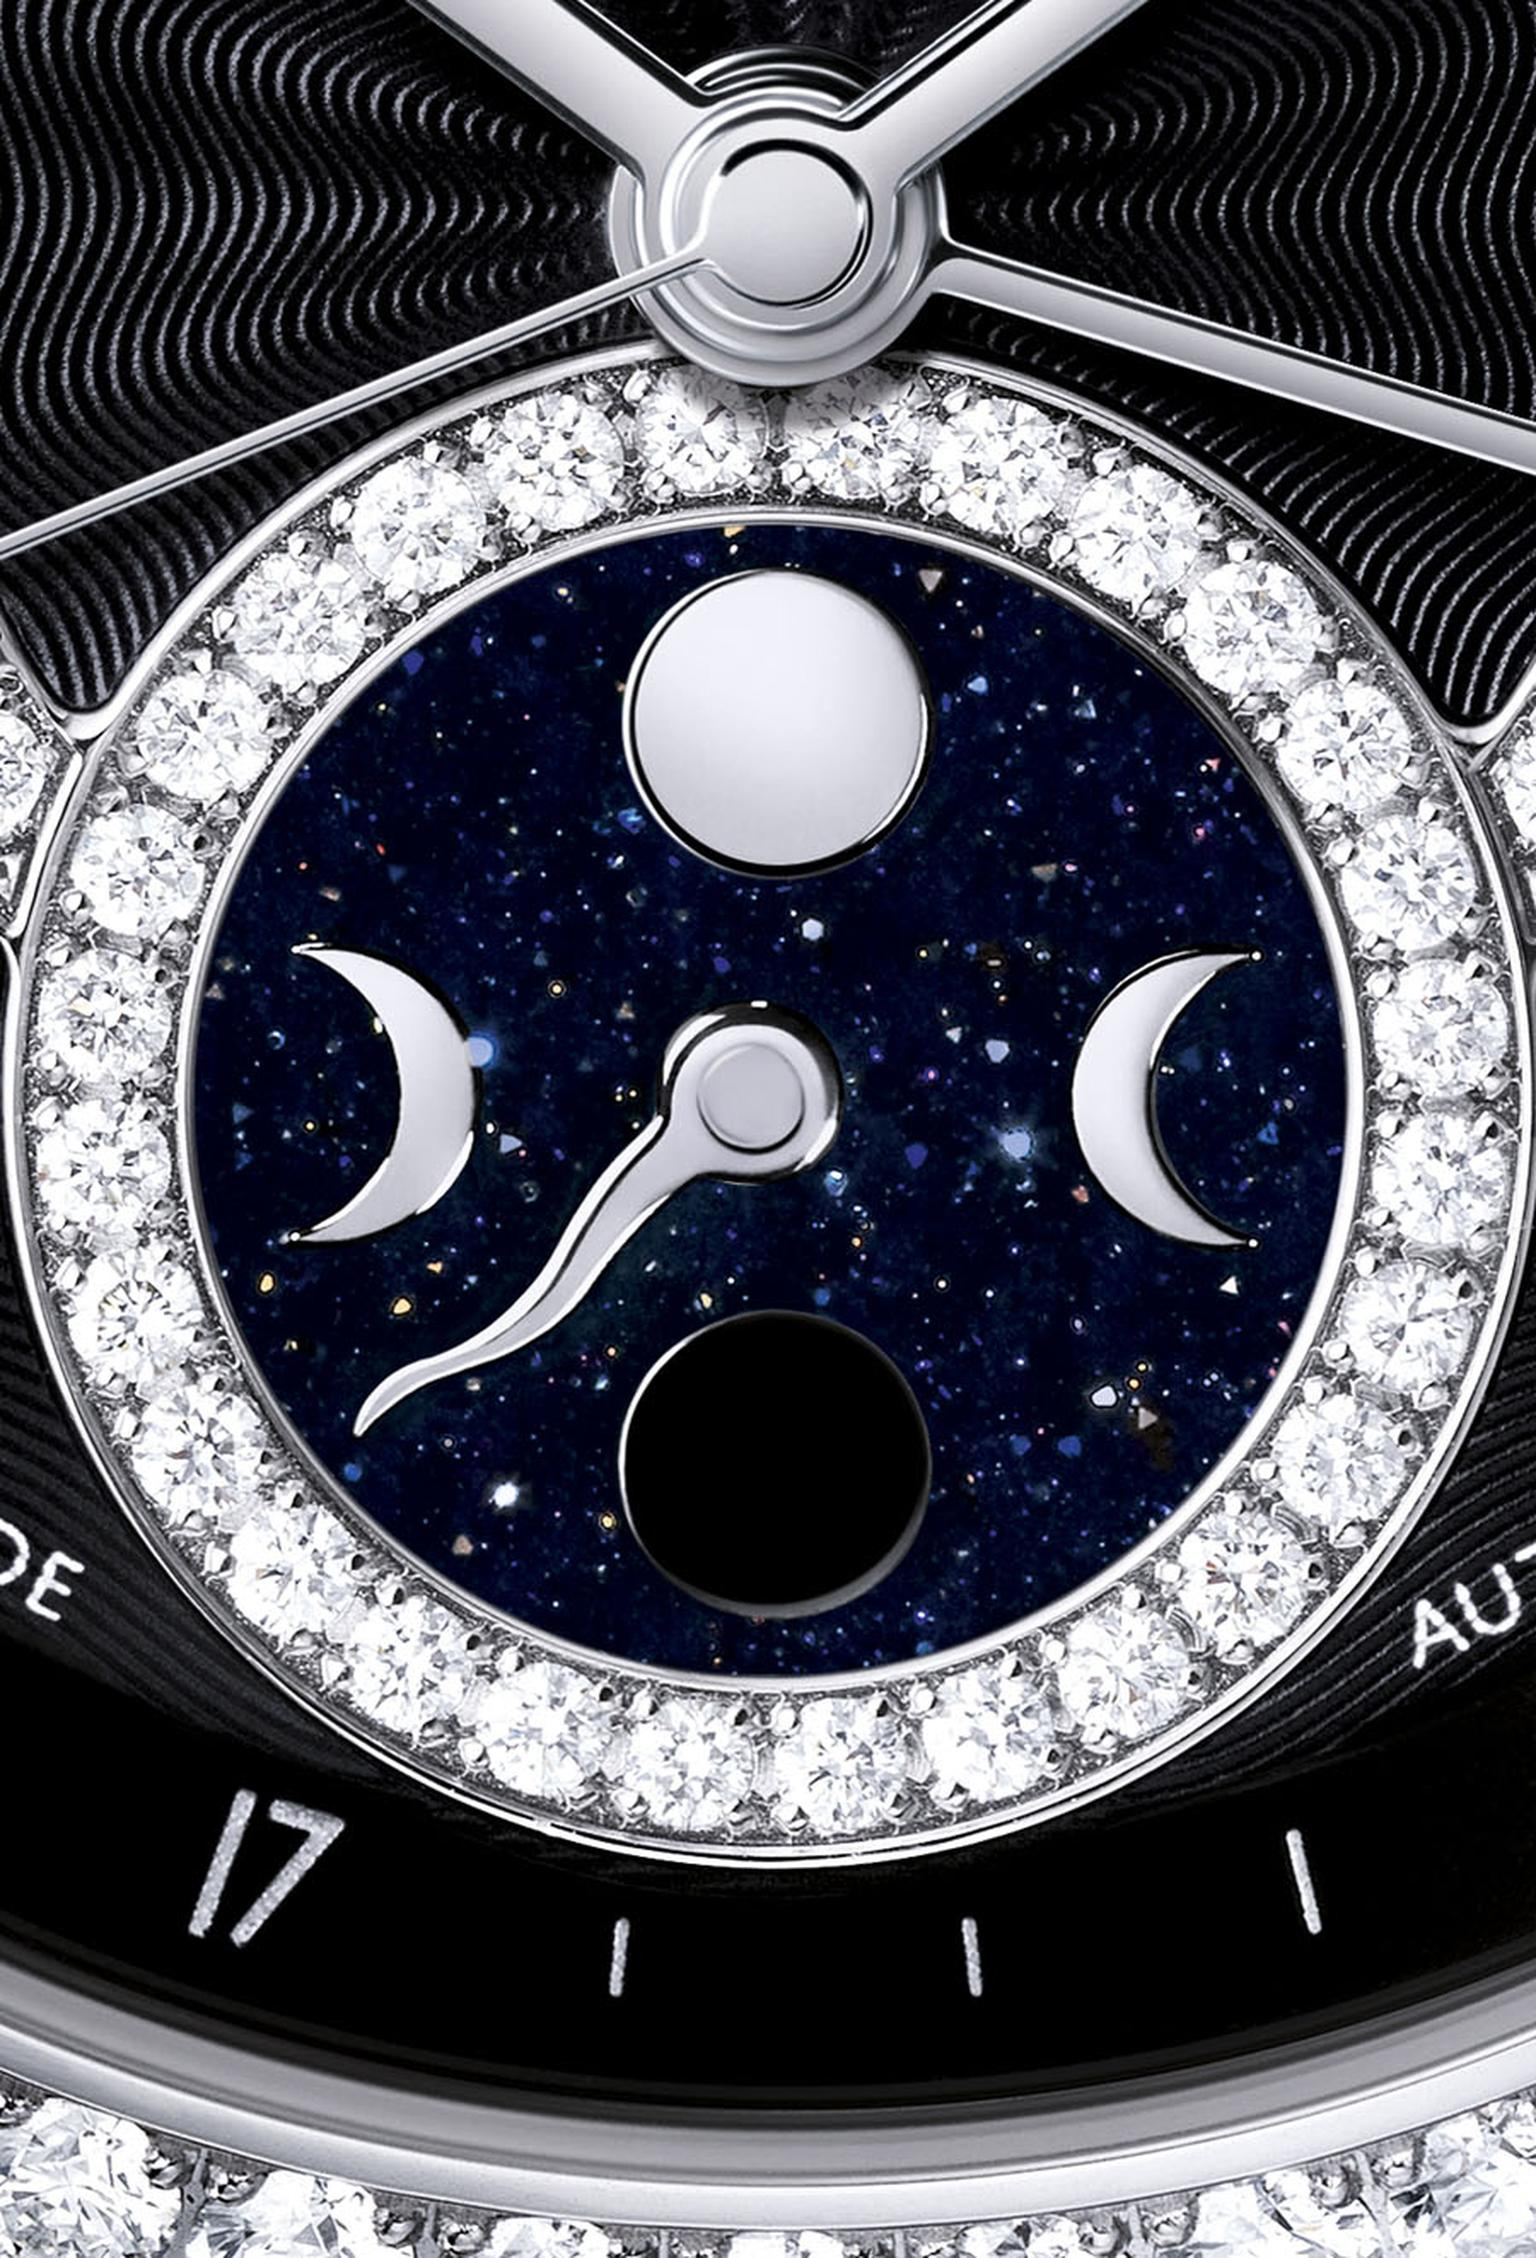 ChanelJ12MoonphaseWatch20